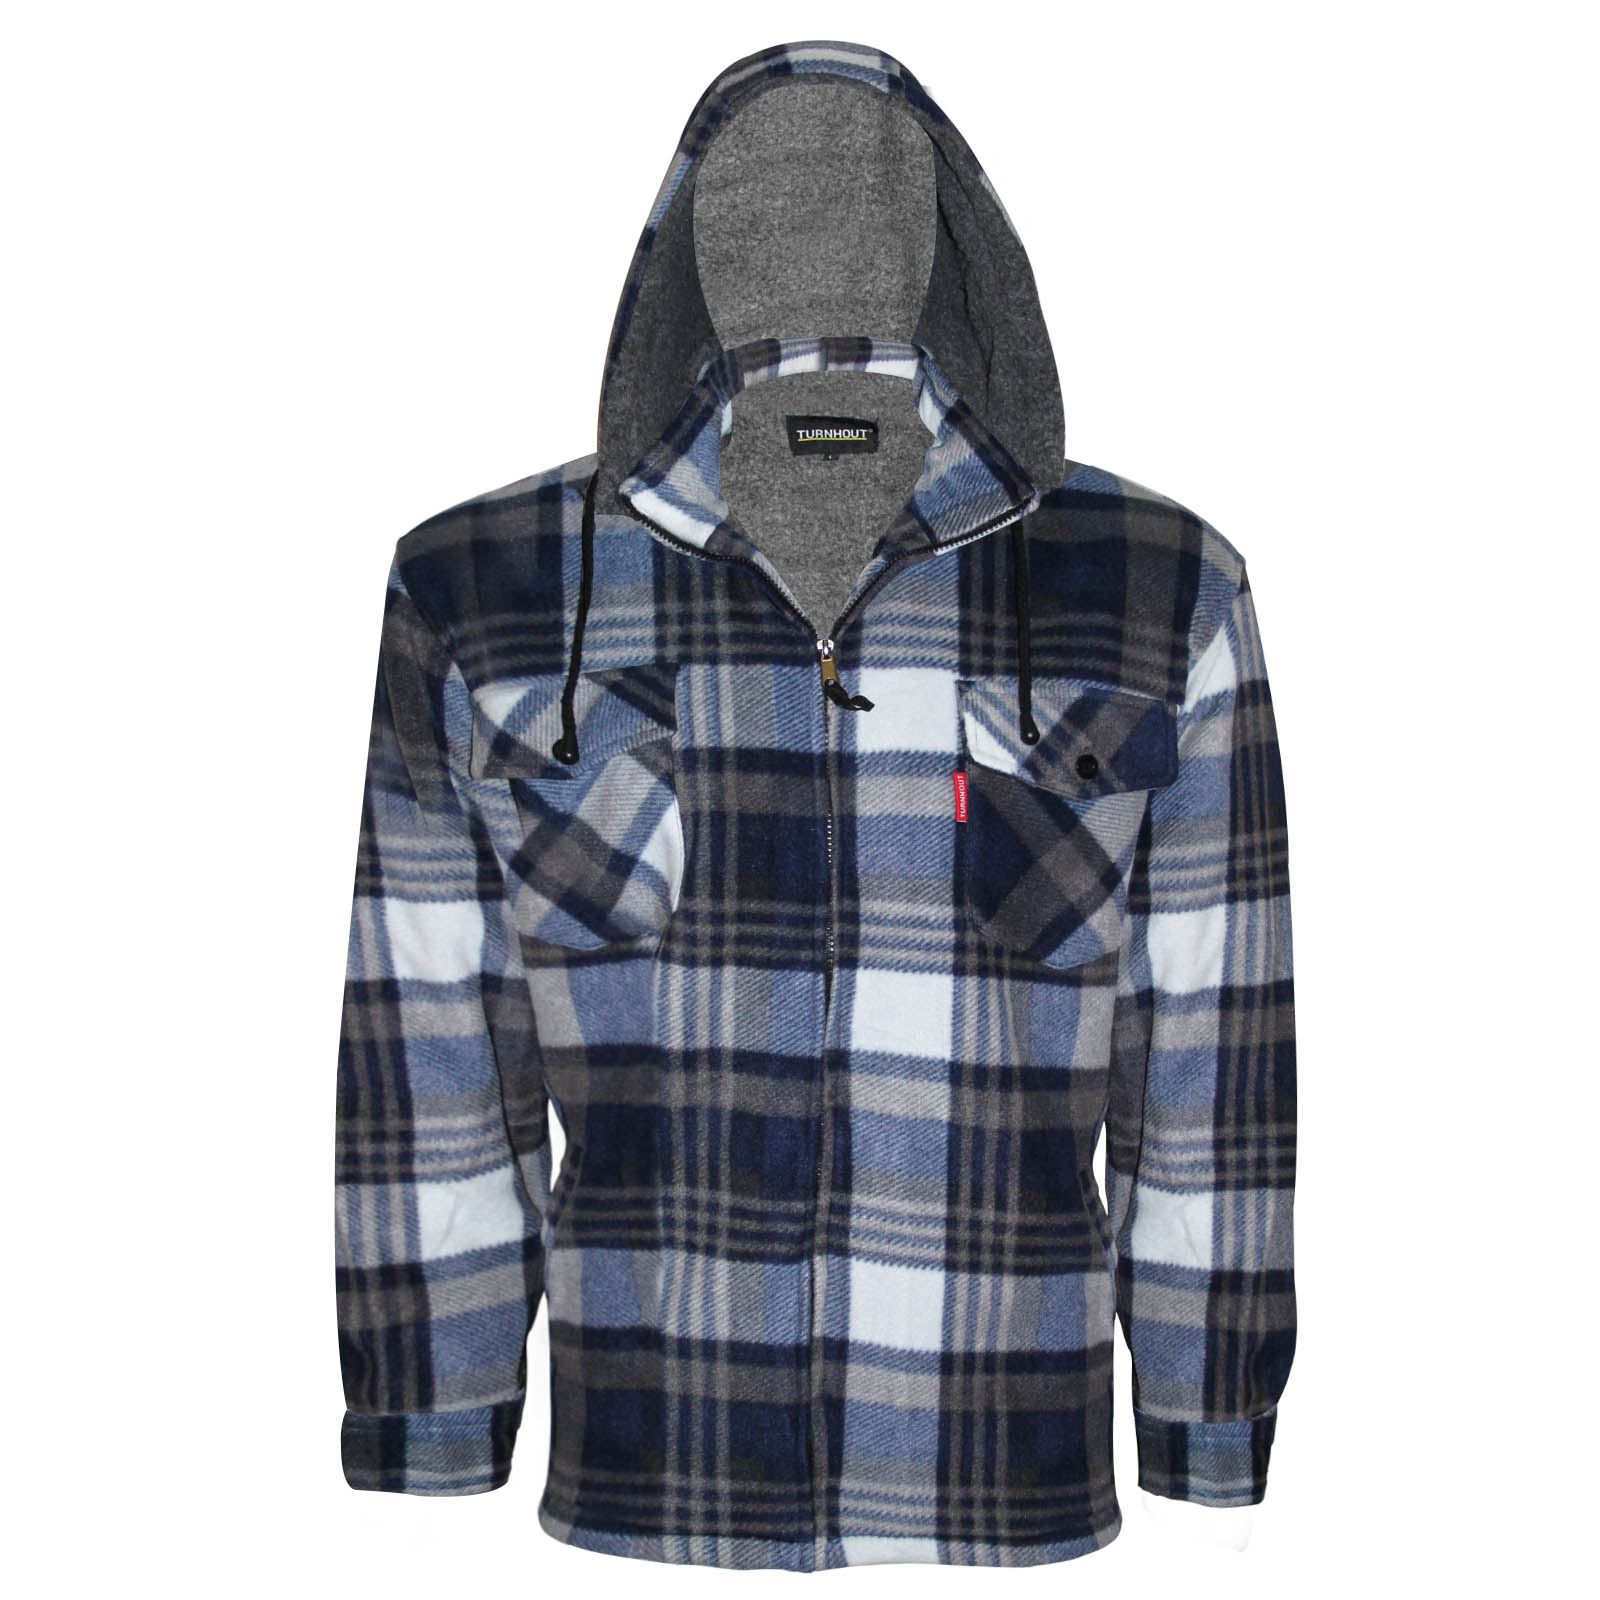 You searched for: lumberjack sweater! Etsy is the home to thousands of handmade, vintage, and one-of-a-kind products and gifts related to your search. Men's Clothing Shirts Sweaters the men lumberjack store wide vintage sweater sweater, wool acrylic pattern LePlacardPretAPasser $ .